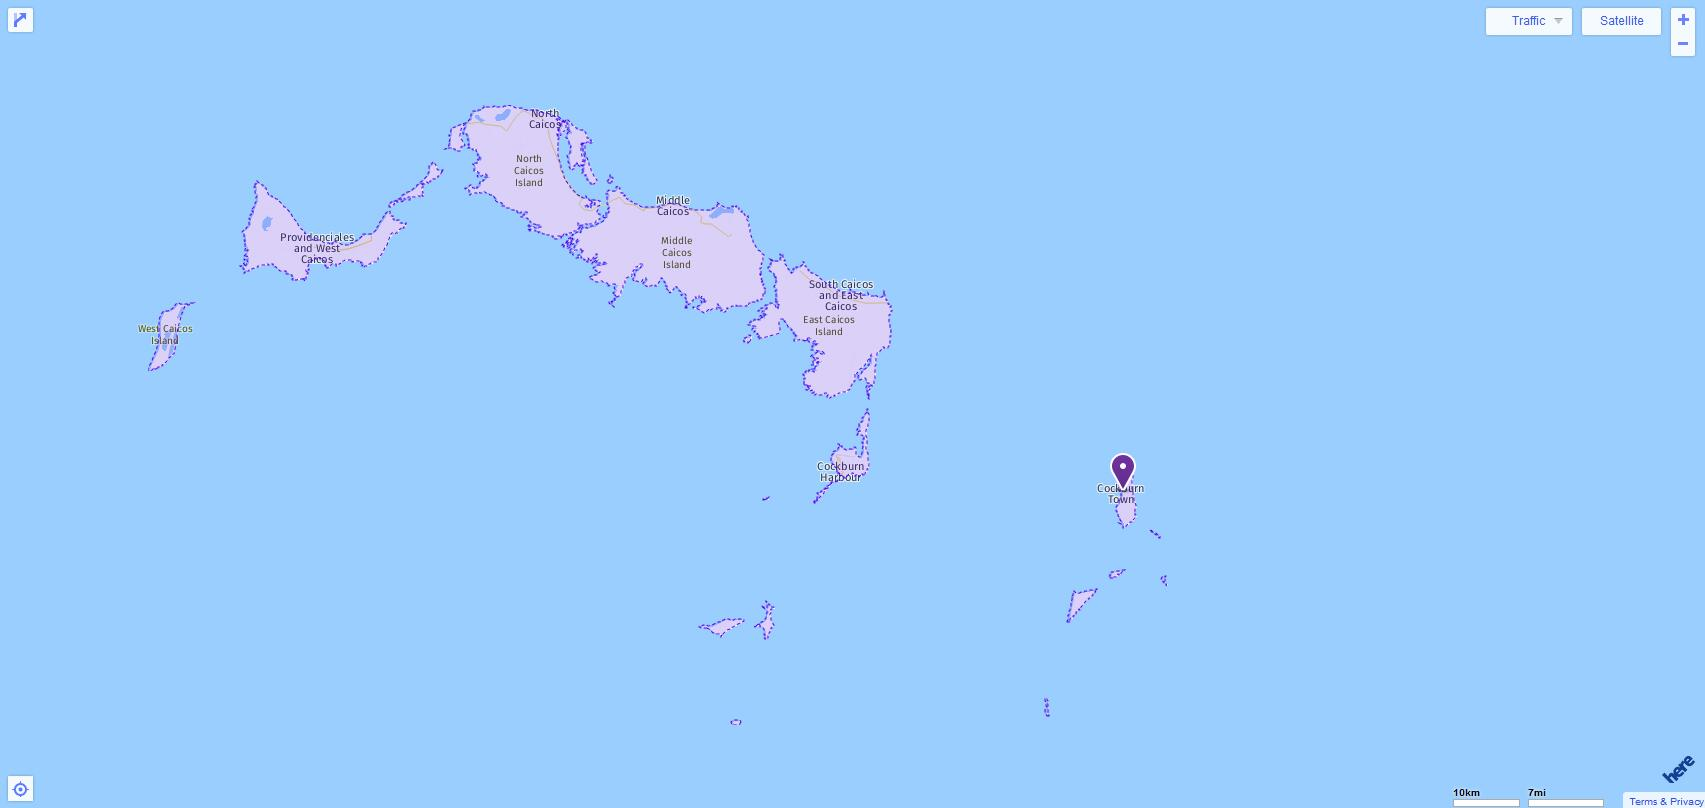 ACT Test Centers and Dates in Turks and Caicos Islands